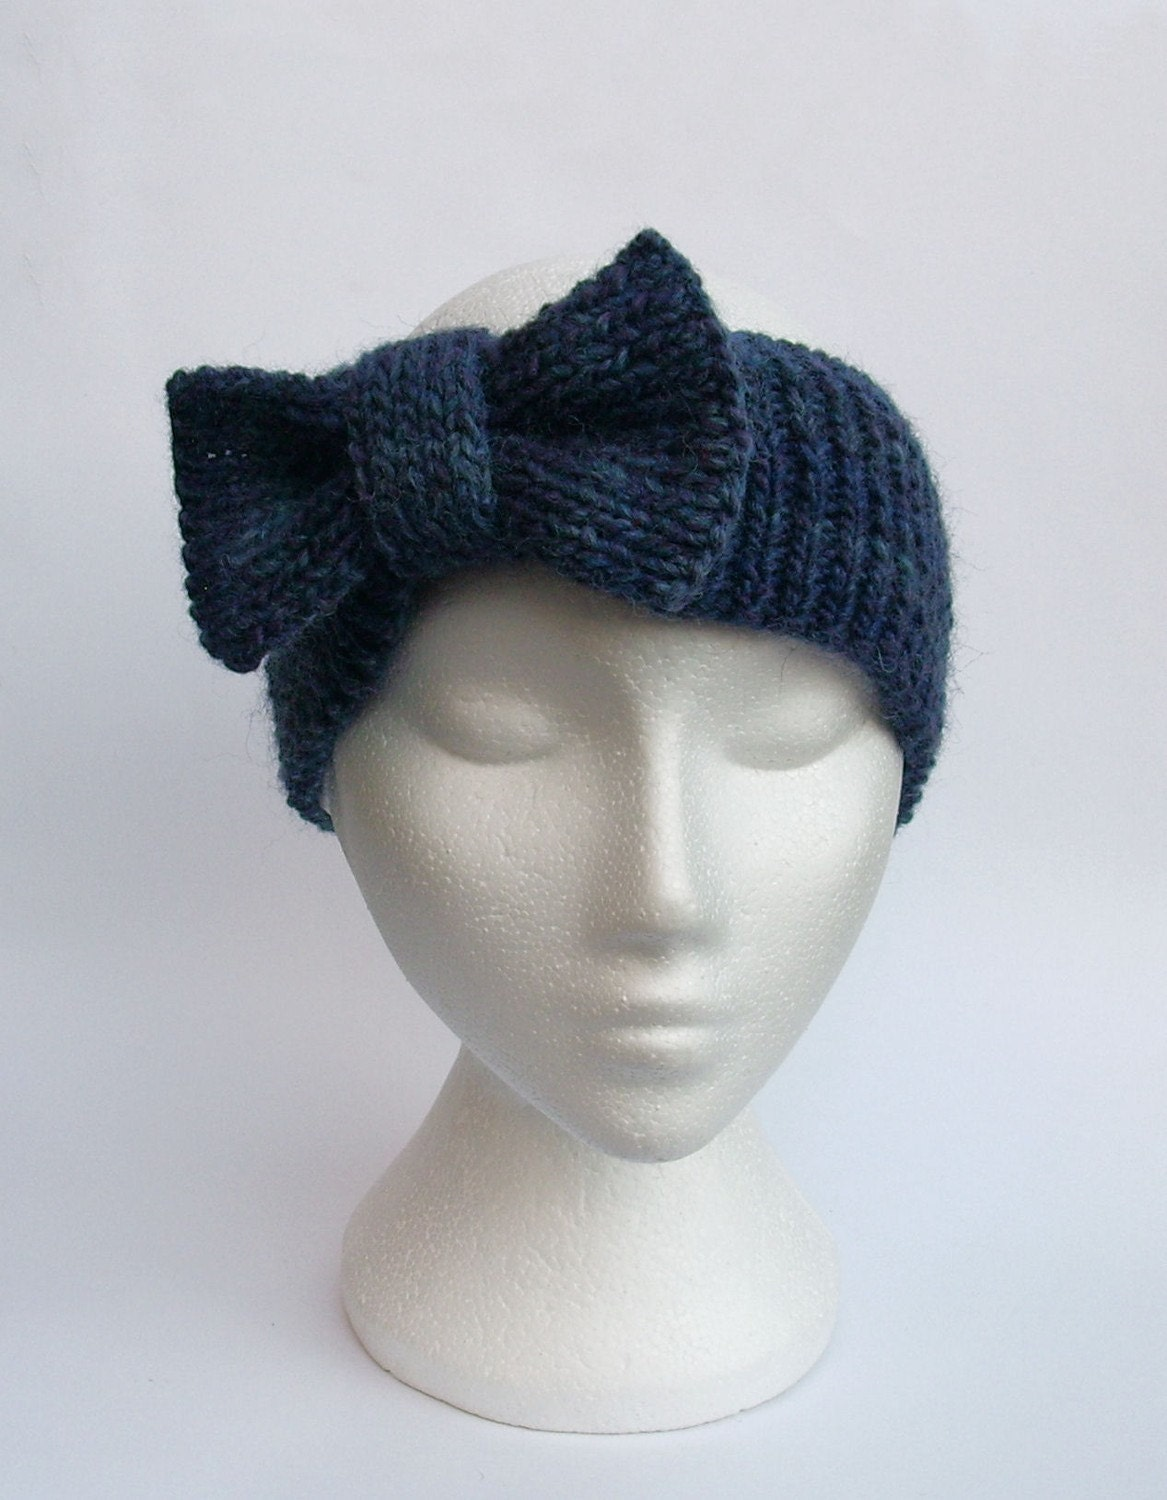 Knitted Headband With Bow Pattern : Knit bow headband handmade headband ear warmers in ink by jarg0n Craftjuice...